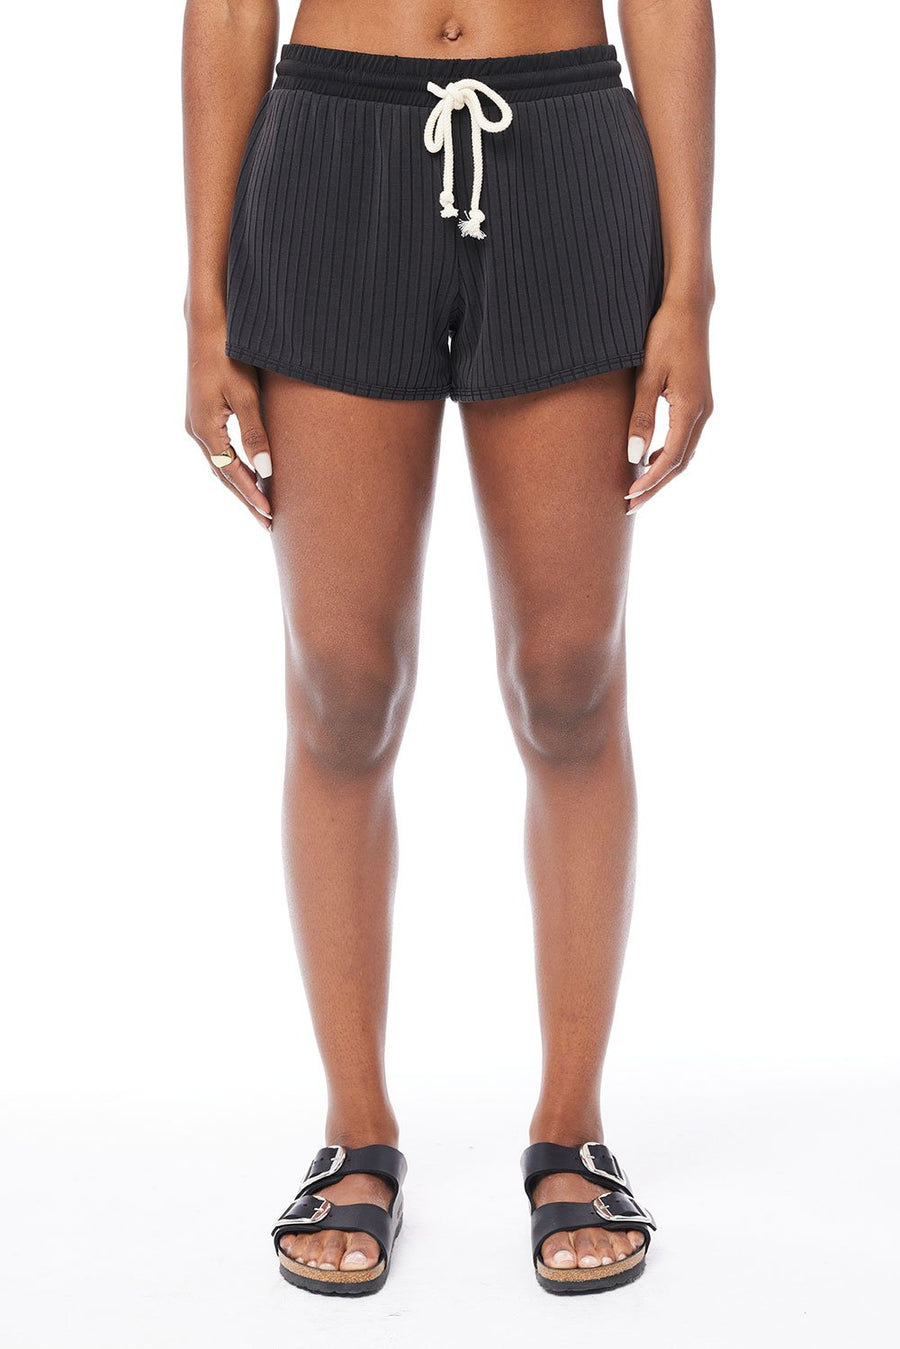 Saltwater Luxe Lounge Shorts in Black